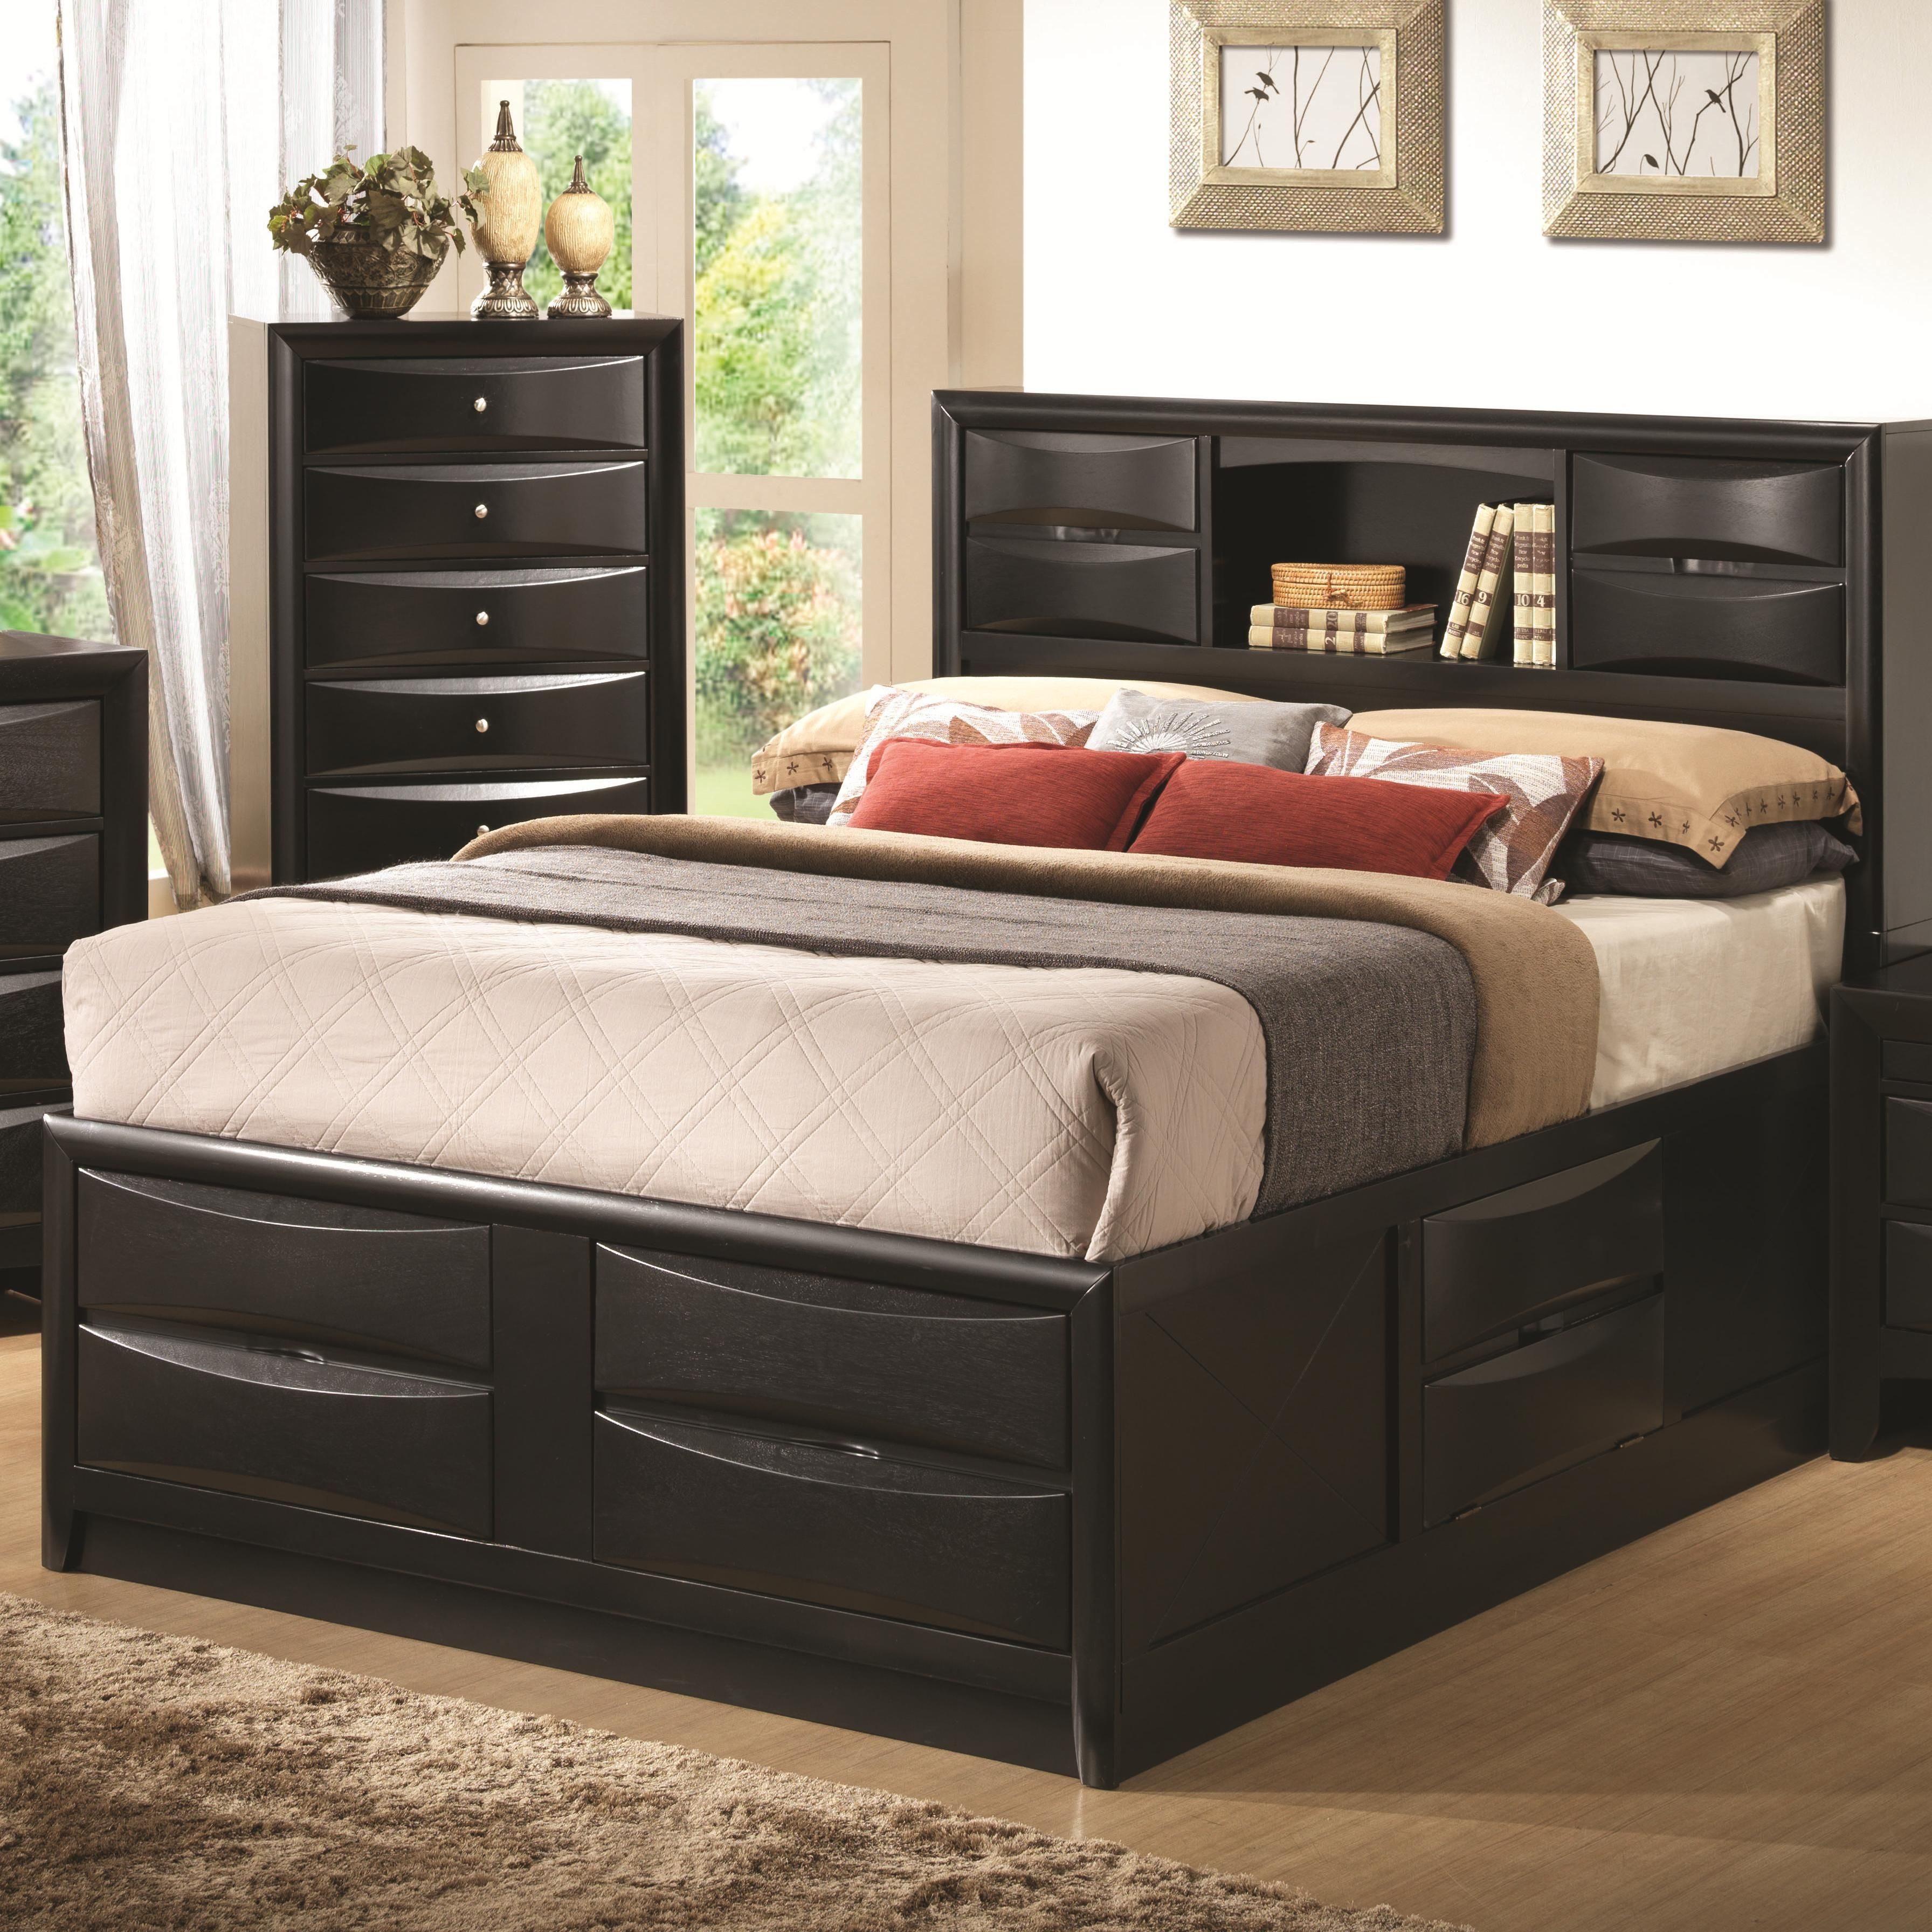 Pin By Abomoaz On Wallpapers Bed Frame With Drawers Bed Frame With Storage Bed Furniture